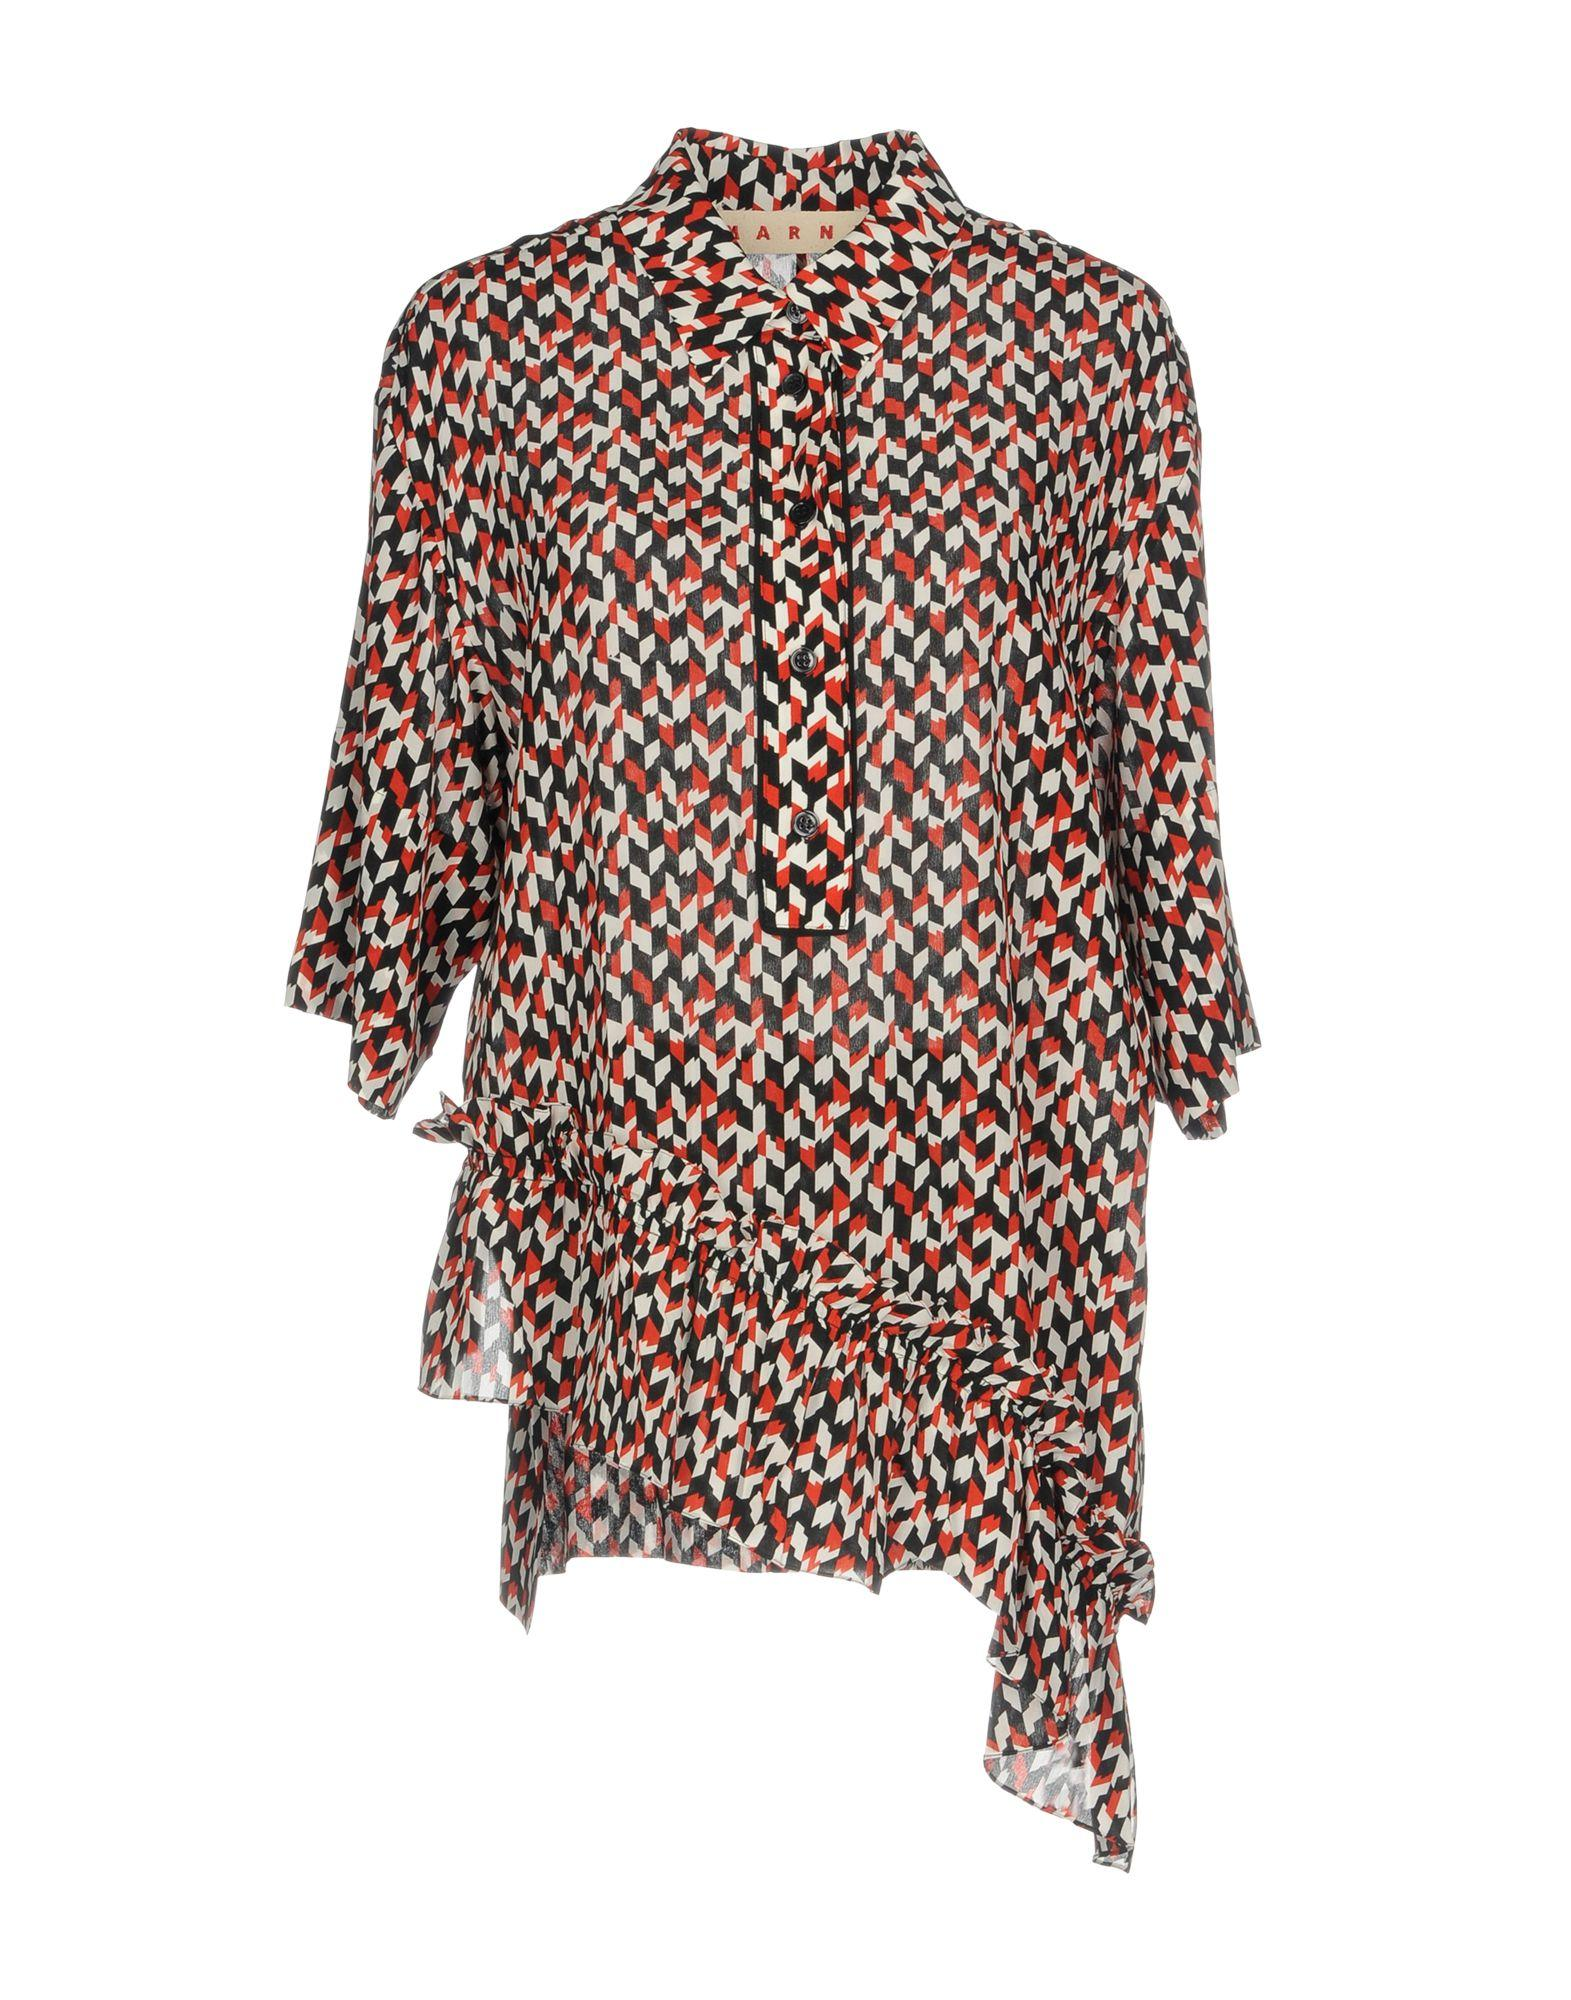 Marni Printed Silk Blouse In Poppy Red